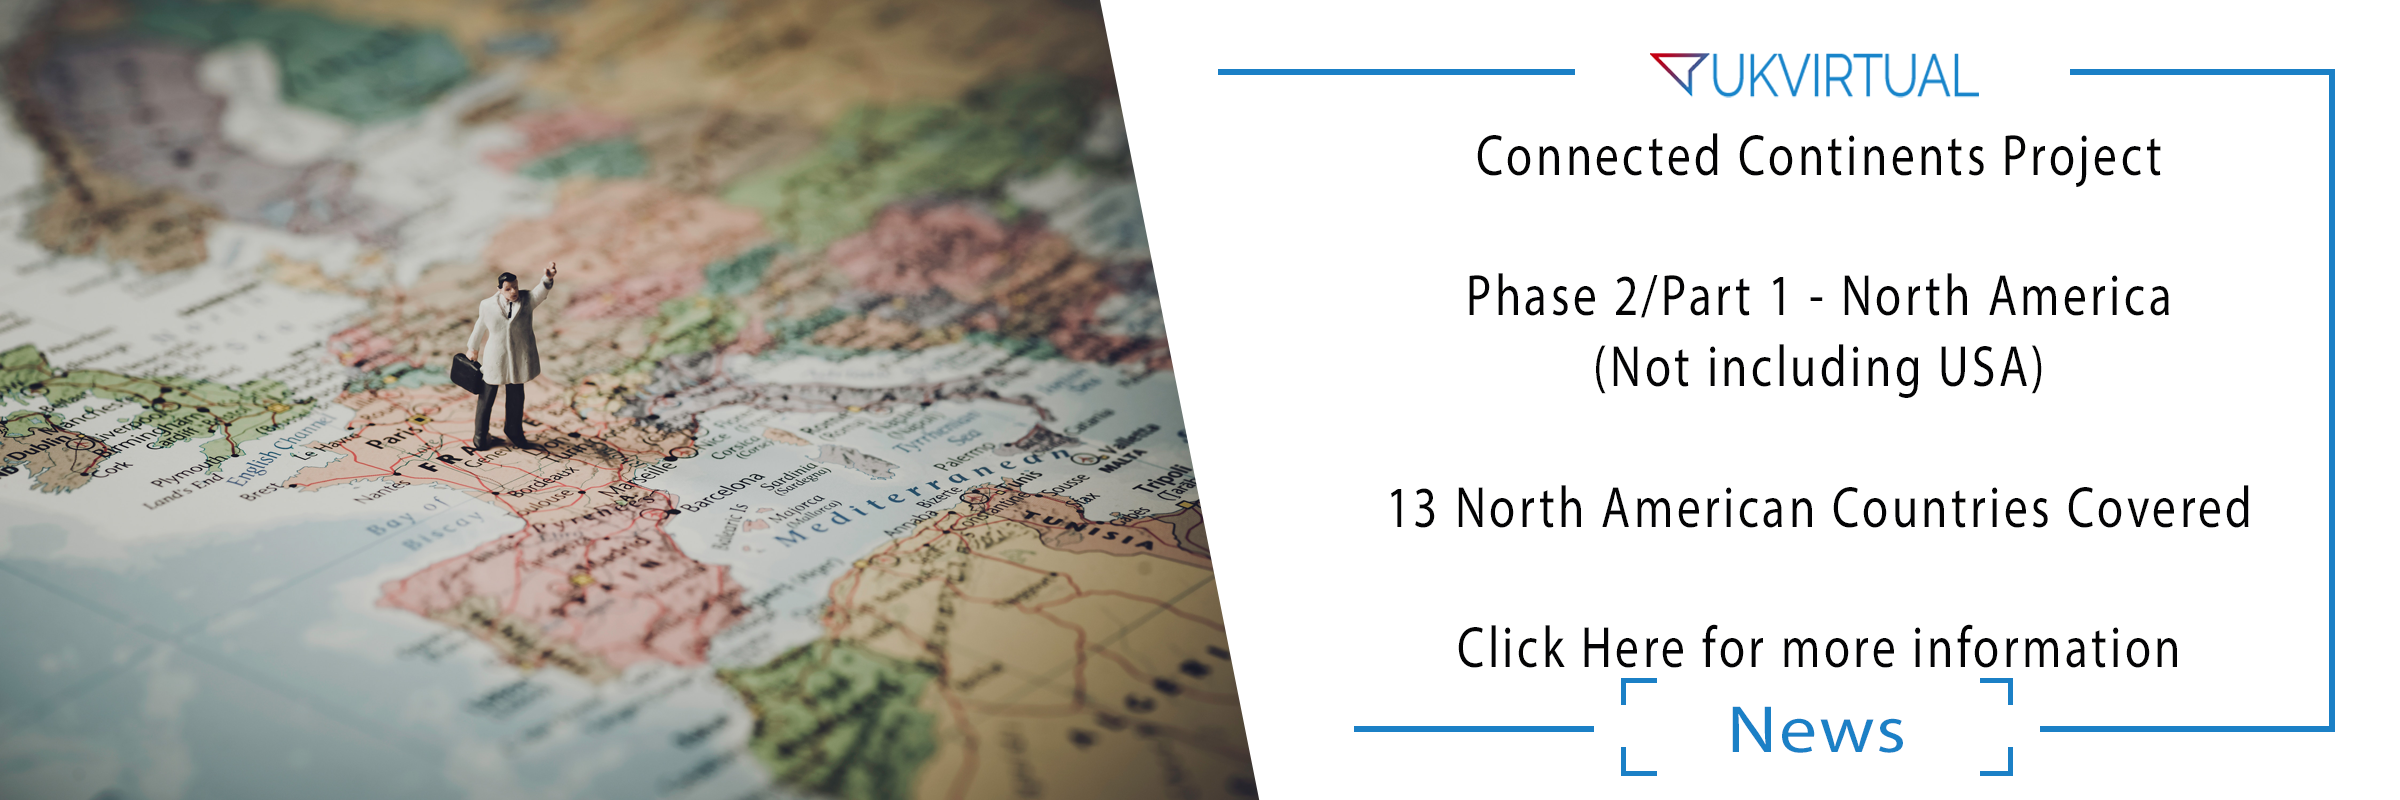 Connected Continents Project – Phase 2/Part 1 – North America – COMPLETE!